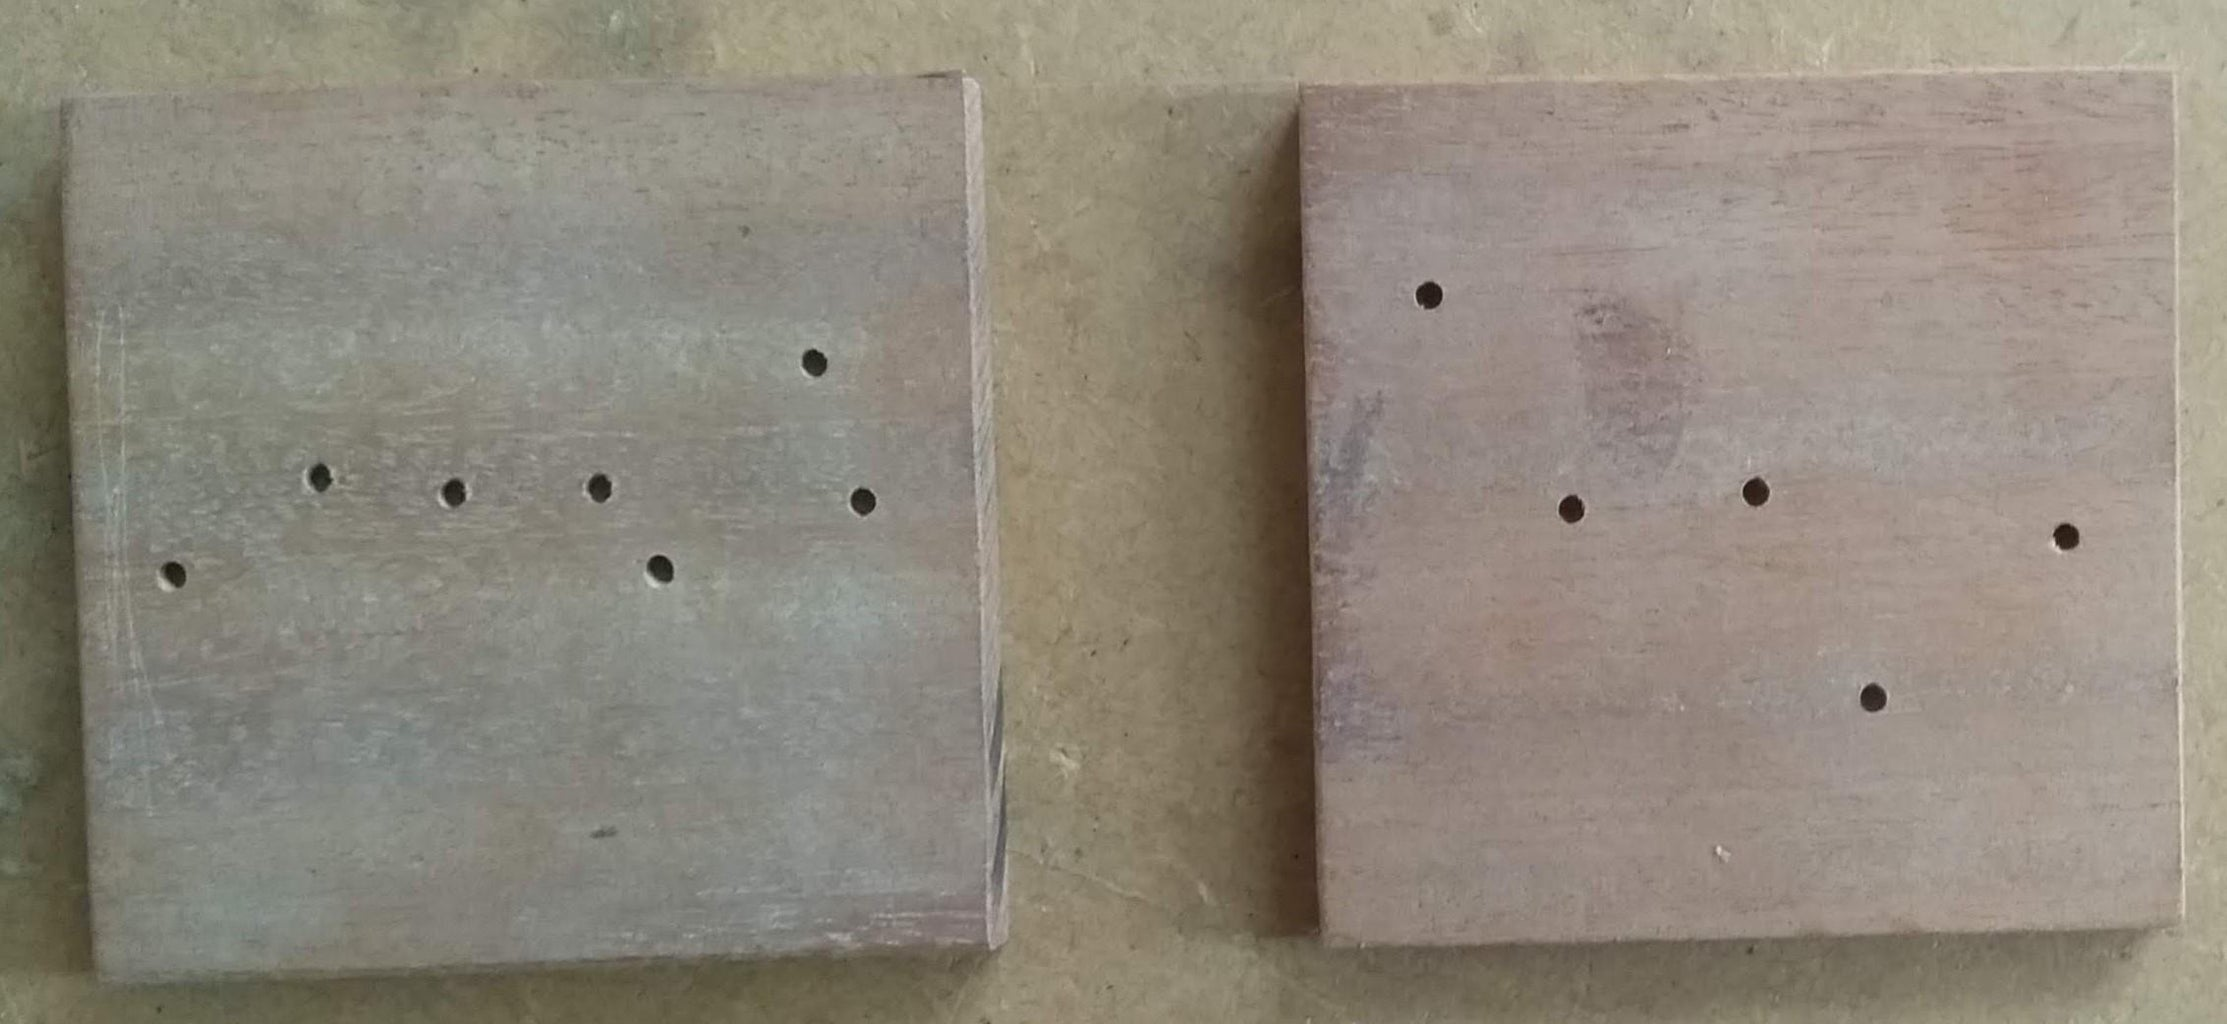 Drilling Star Holes